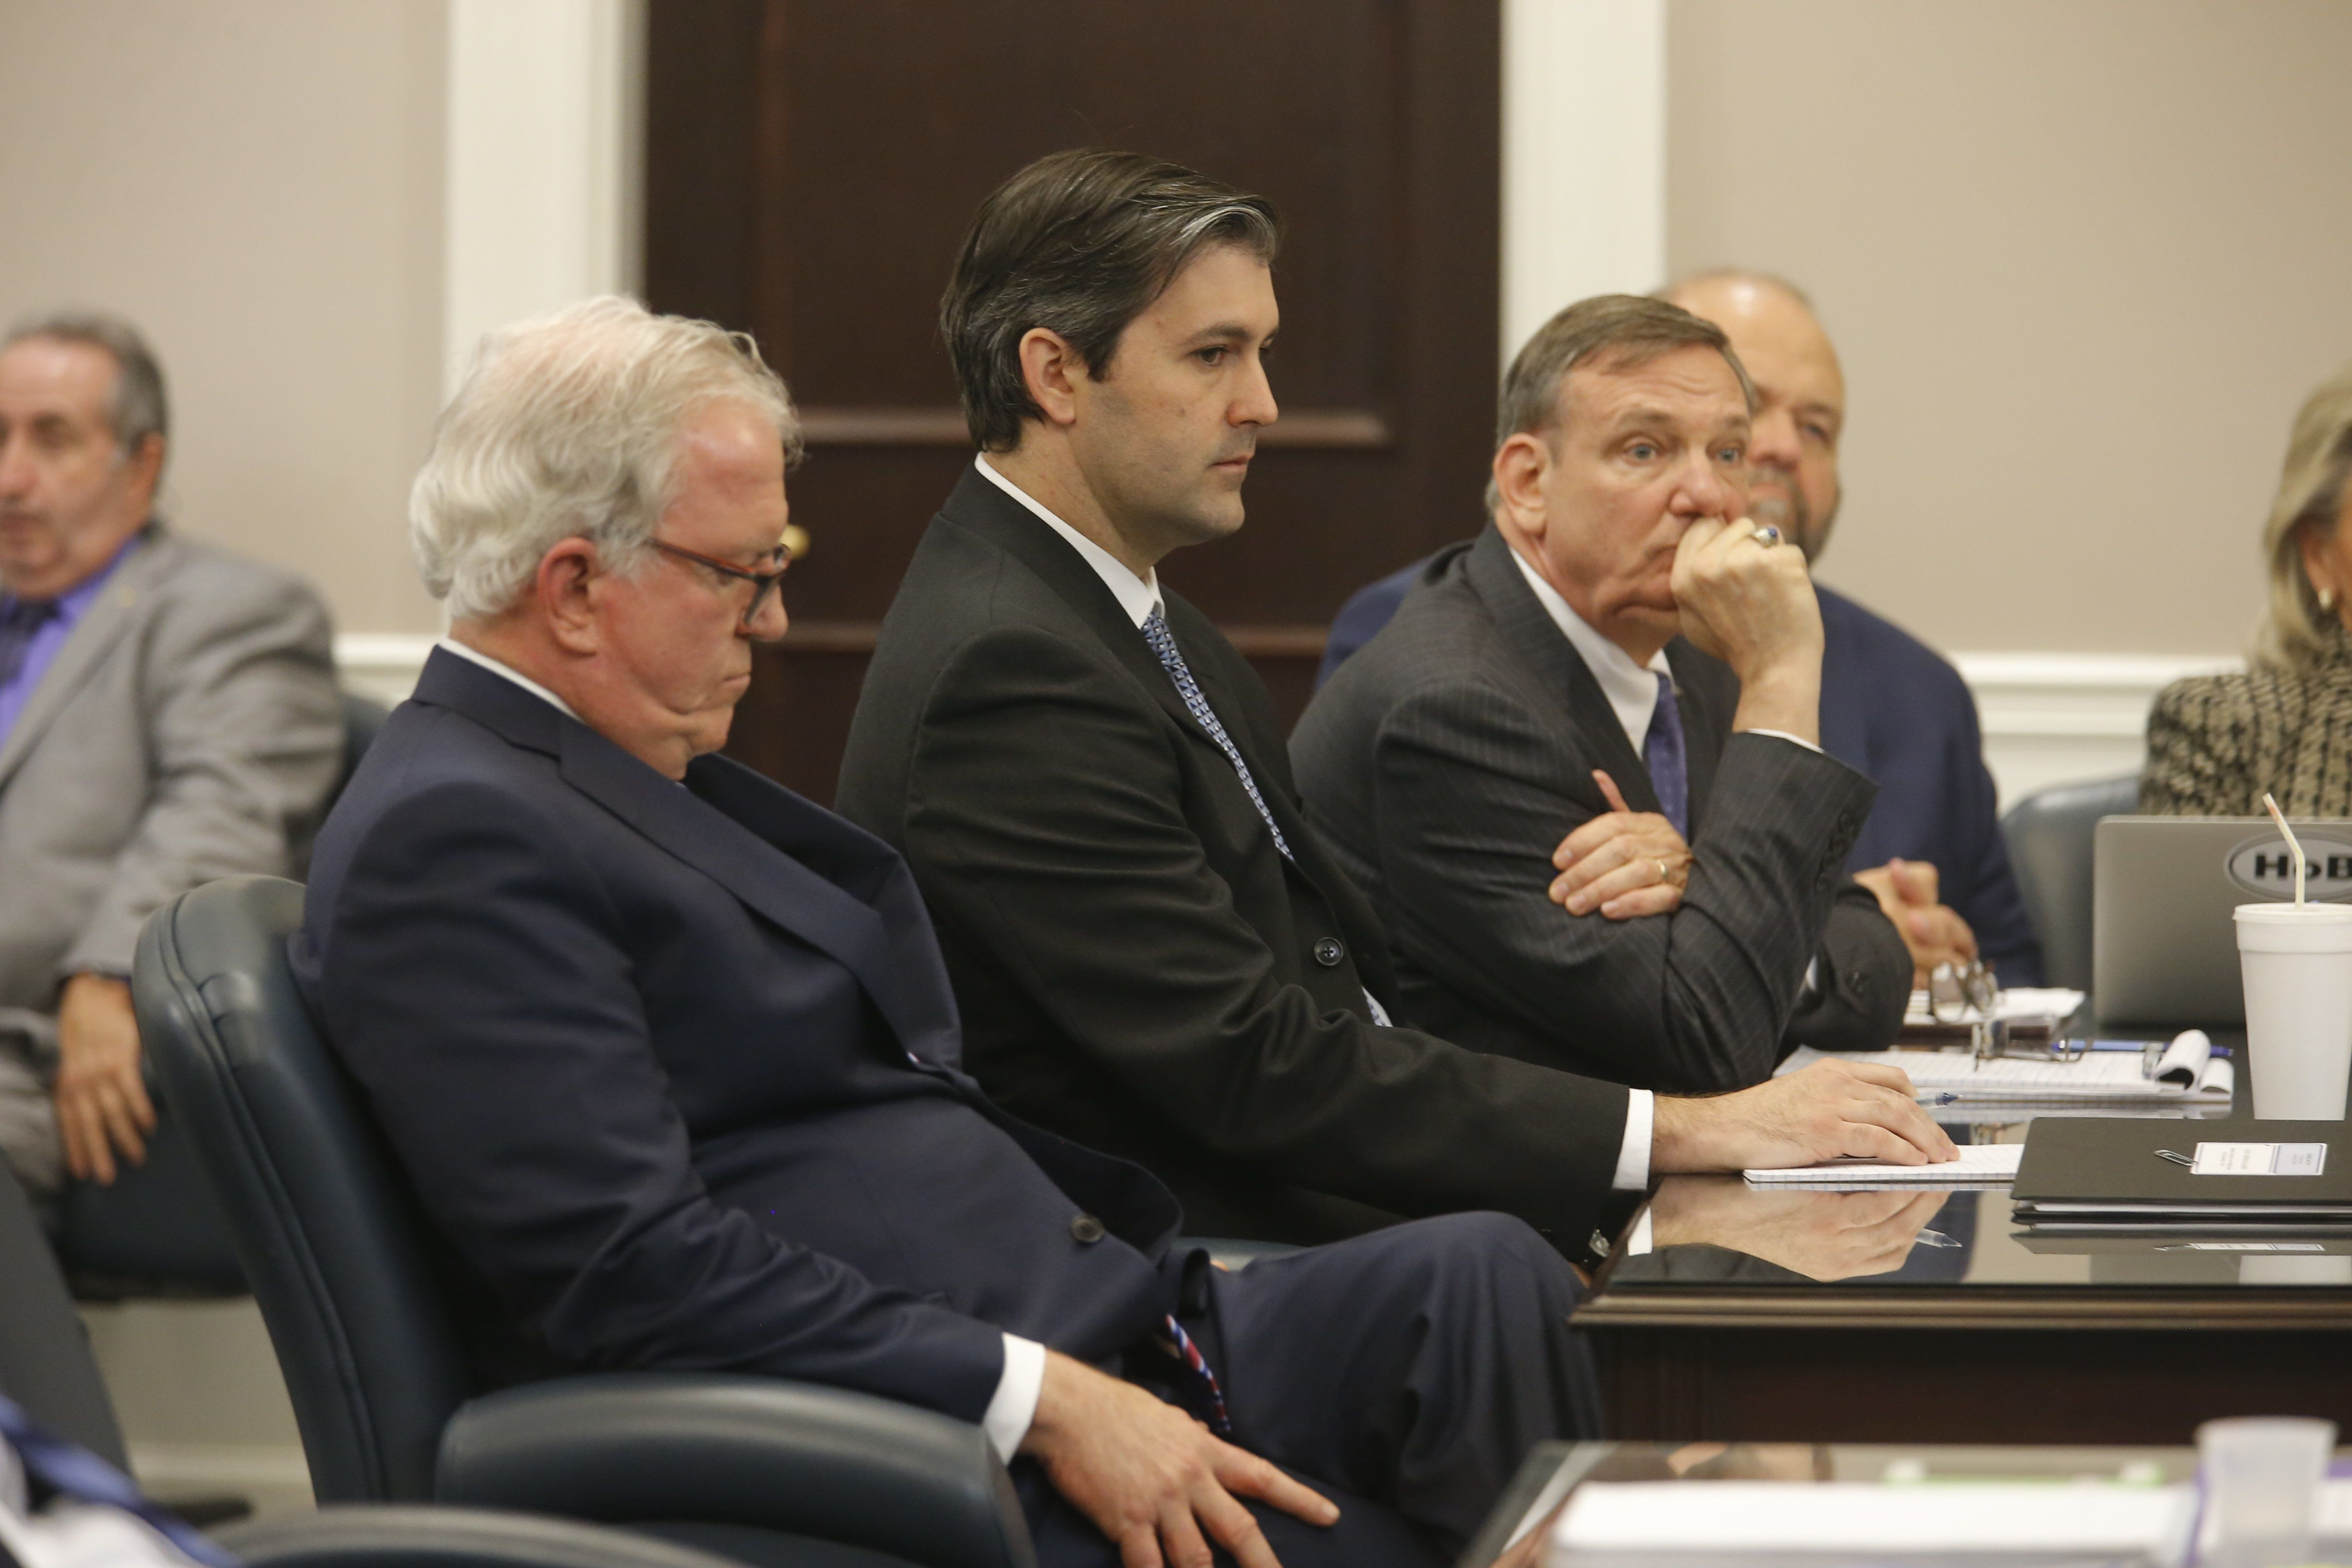 CHARLESTON, SC - DECEMBER 05: Defense attorneys Andy Savage, left, and Don McCune sit around former North Charleston police officer Michael Slager at theCharleston County court in Charleston, S.C., December 5, 2016. Judge Clifton Newman declared a mistrial after the jury was unable to reach a verdict. Slager was accused of shooting and killing Walter Scott, an unarmed black man during a traffic stop in April 2015. (Photo by Grace Beahm - Pool/Getty Images)